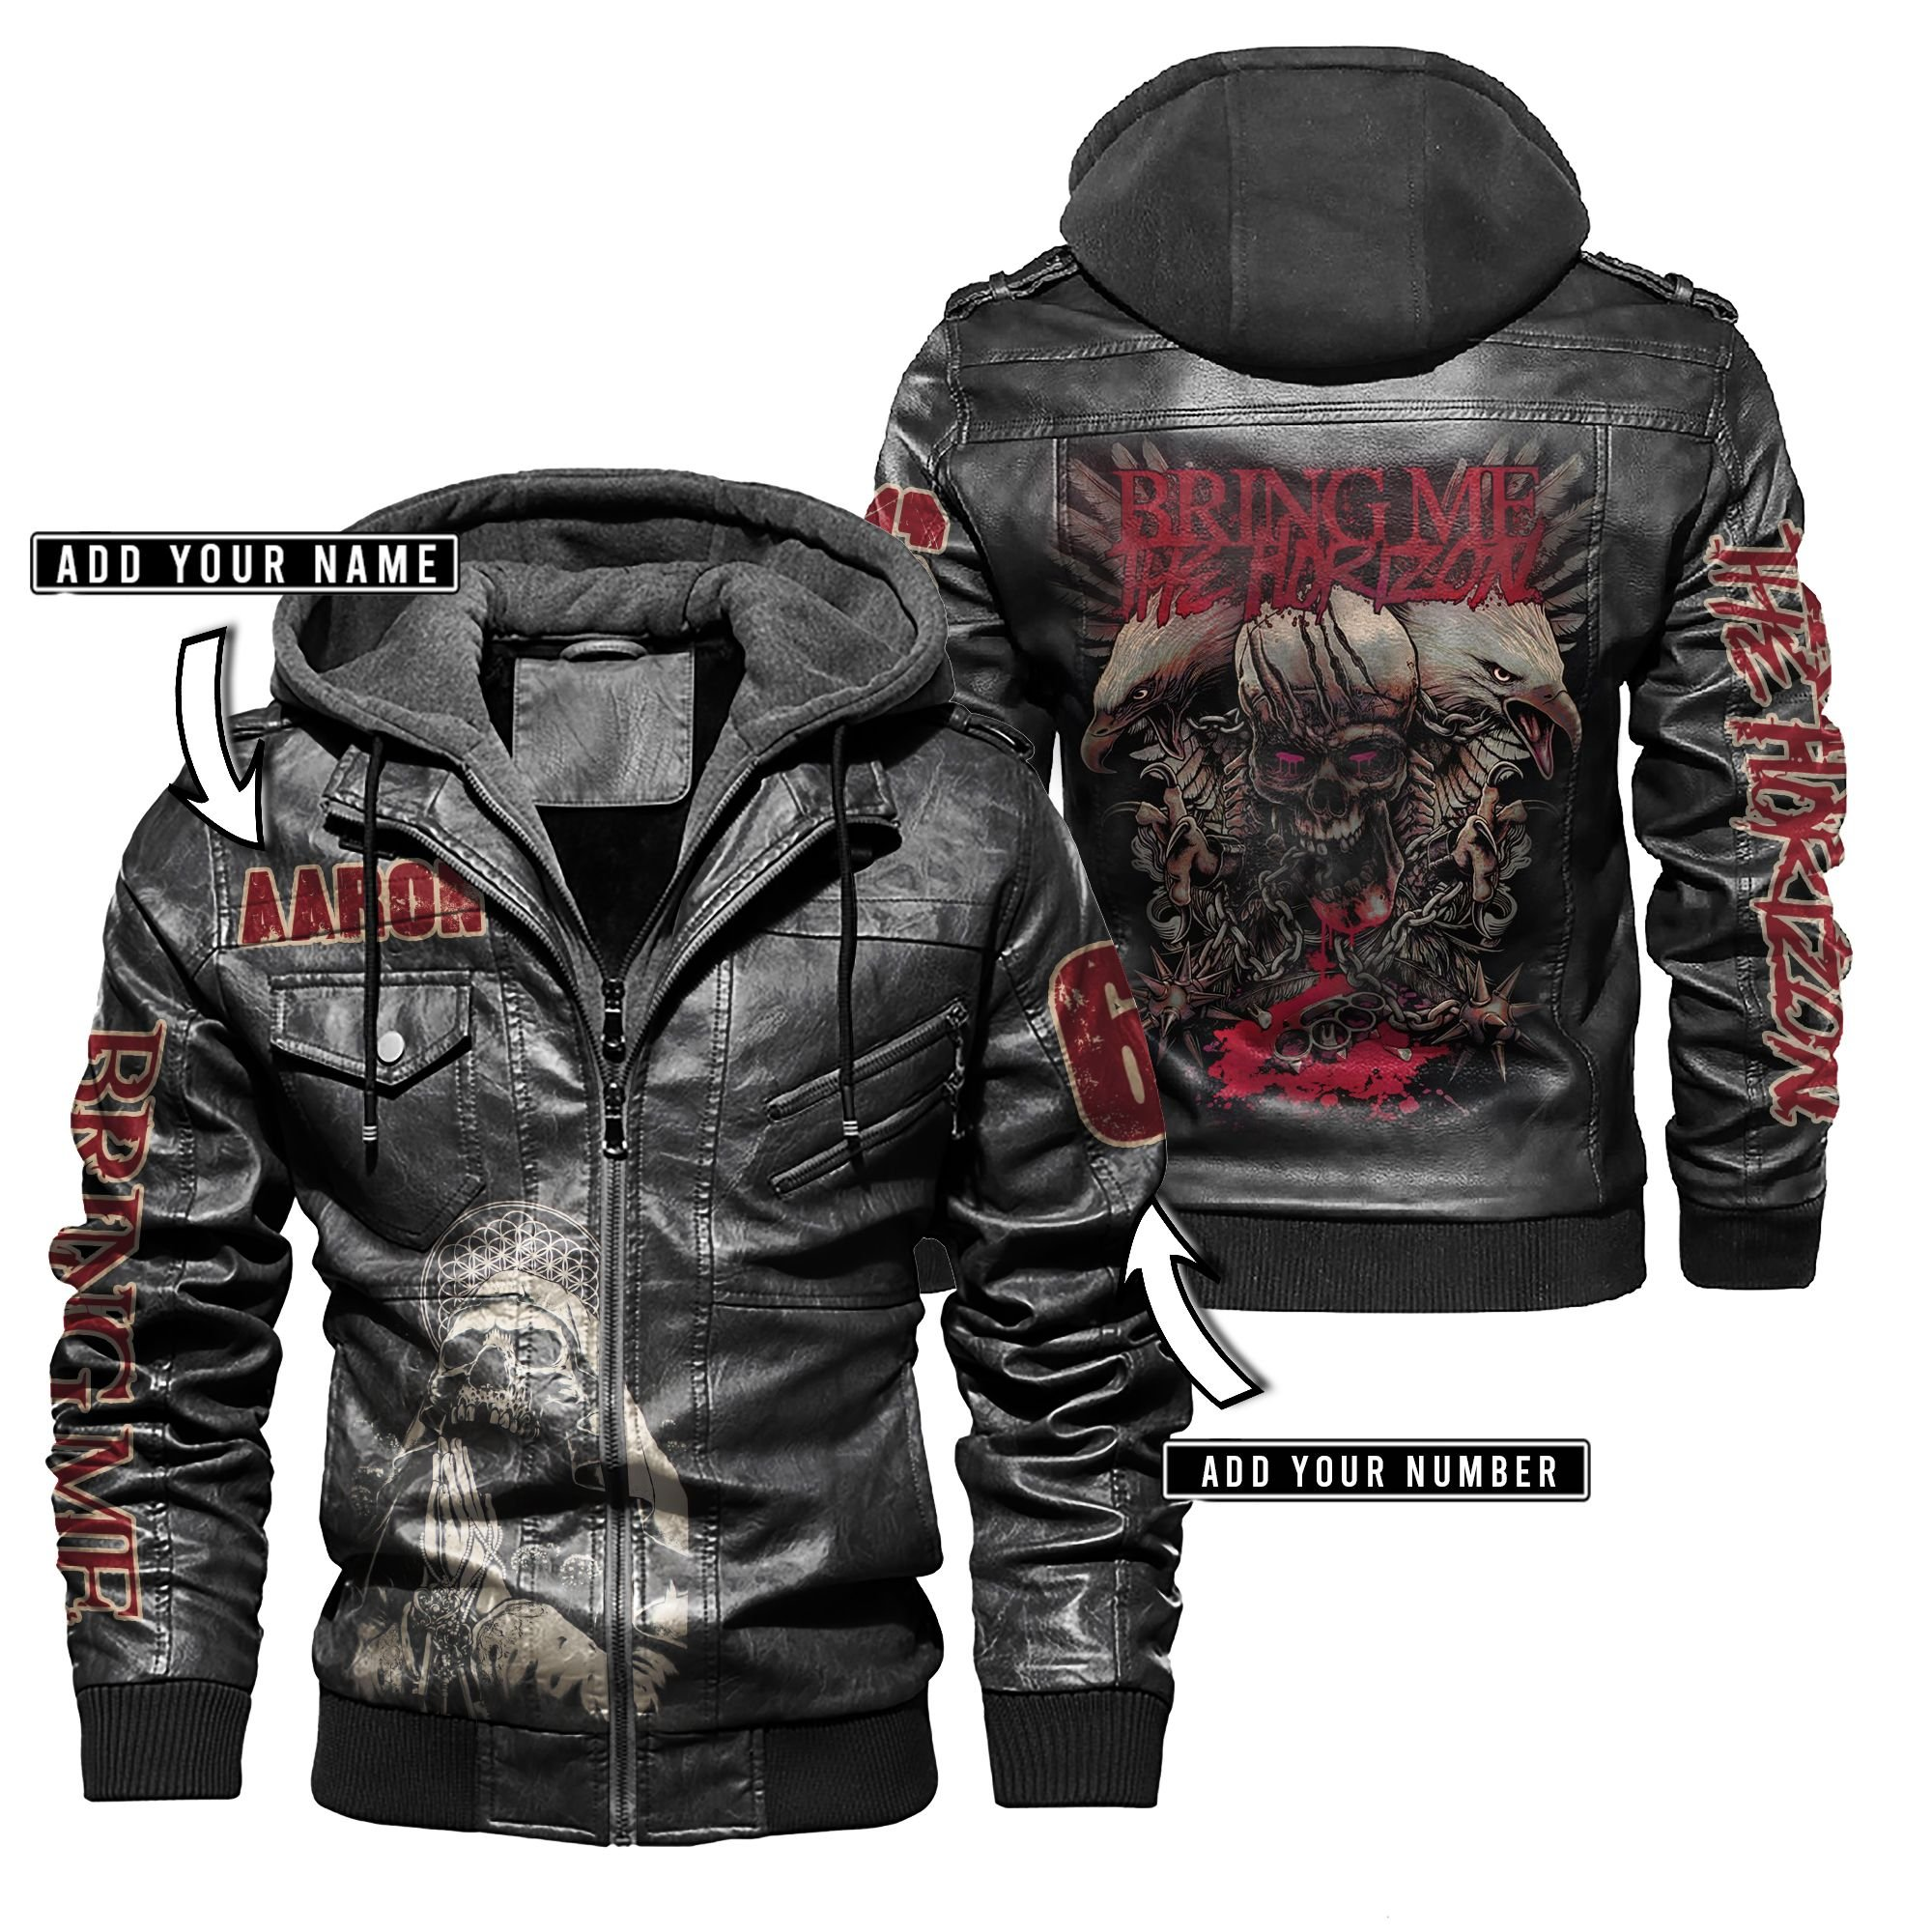 Keep warm with a high quality winter coat from Boxboxshirt